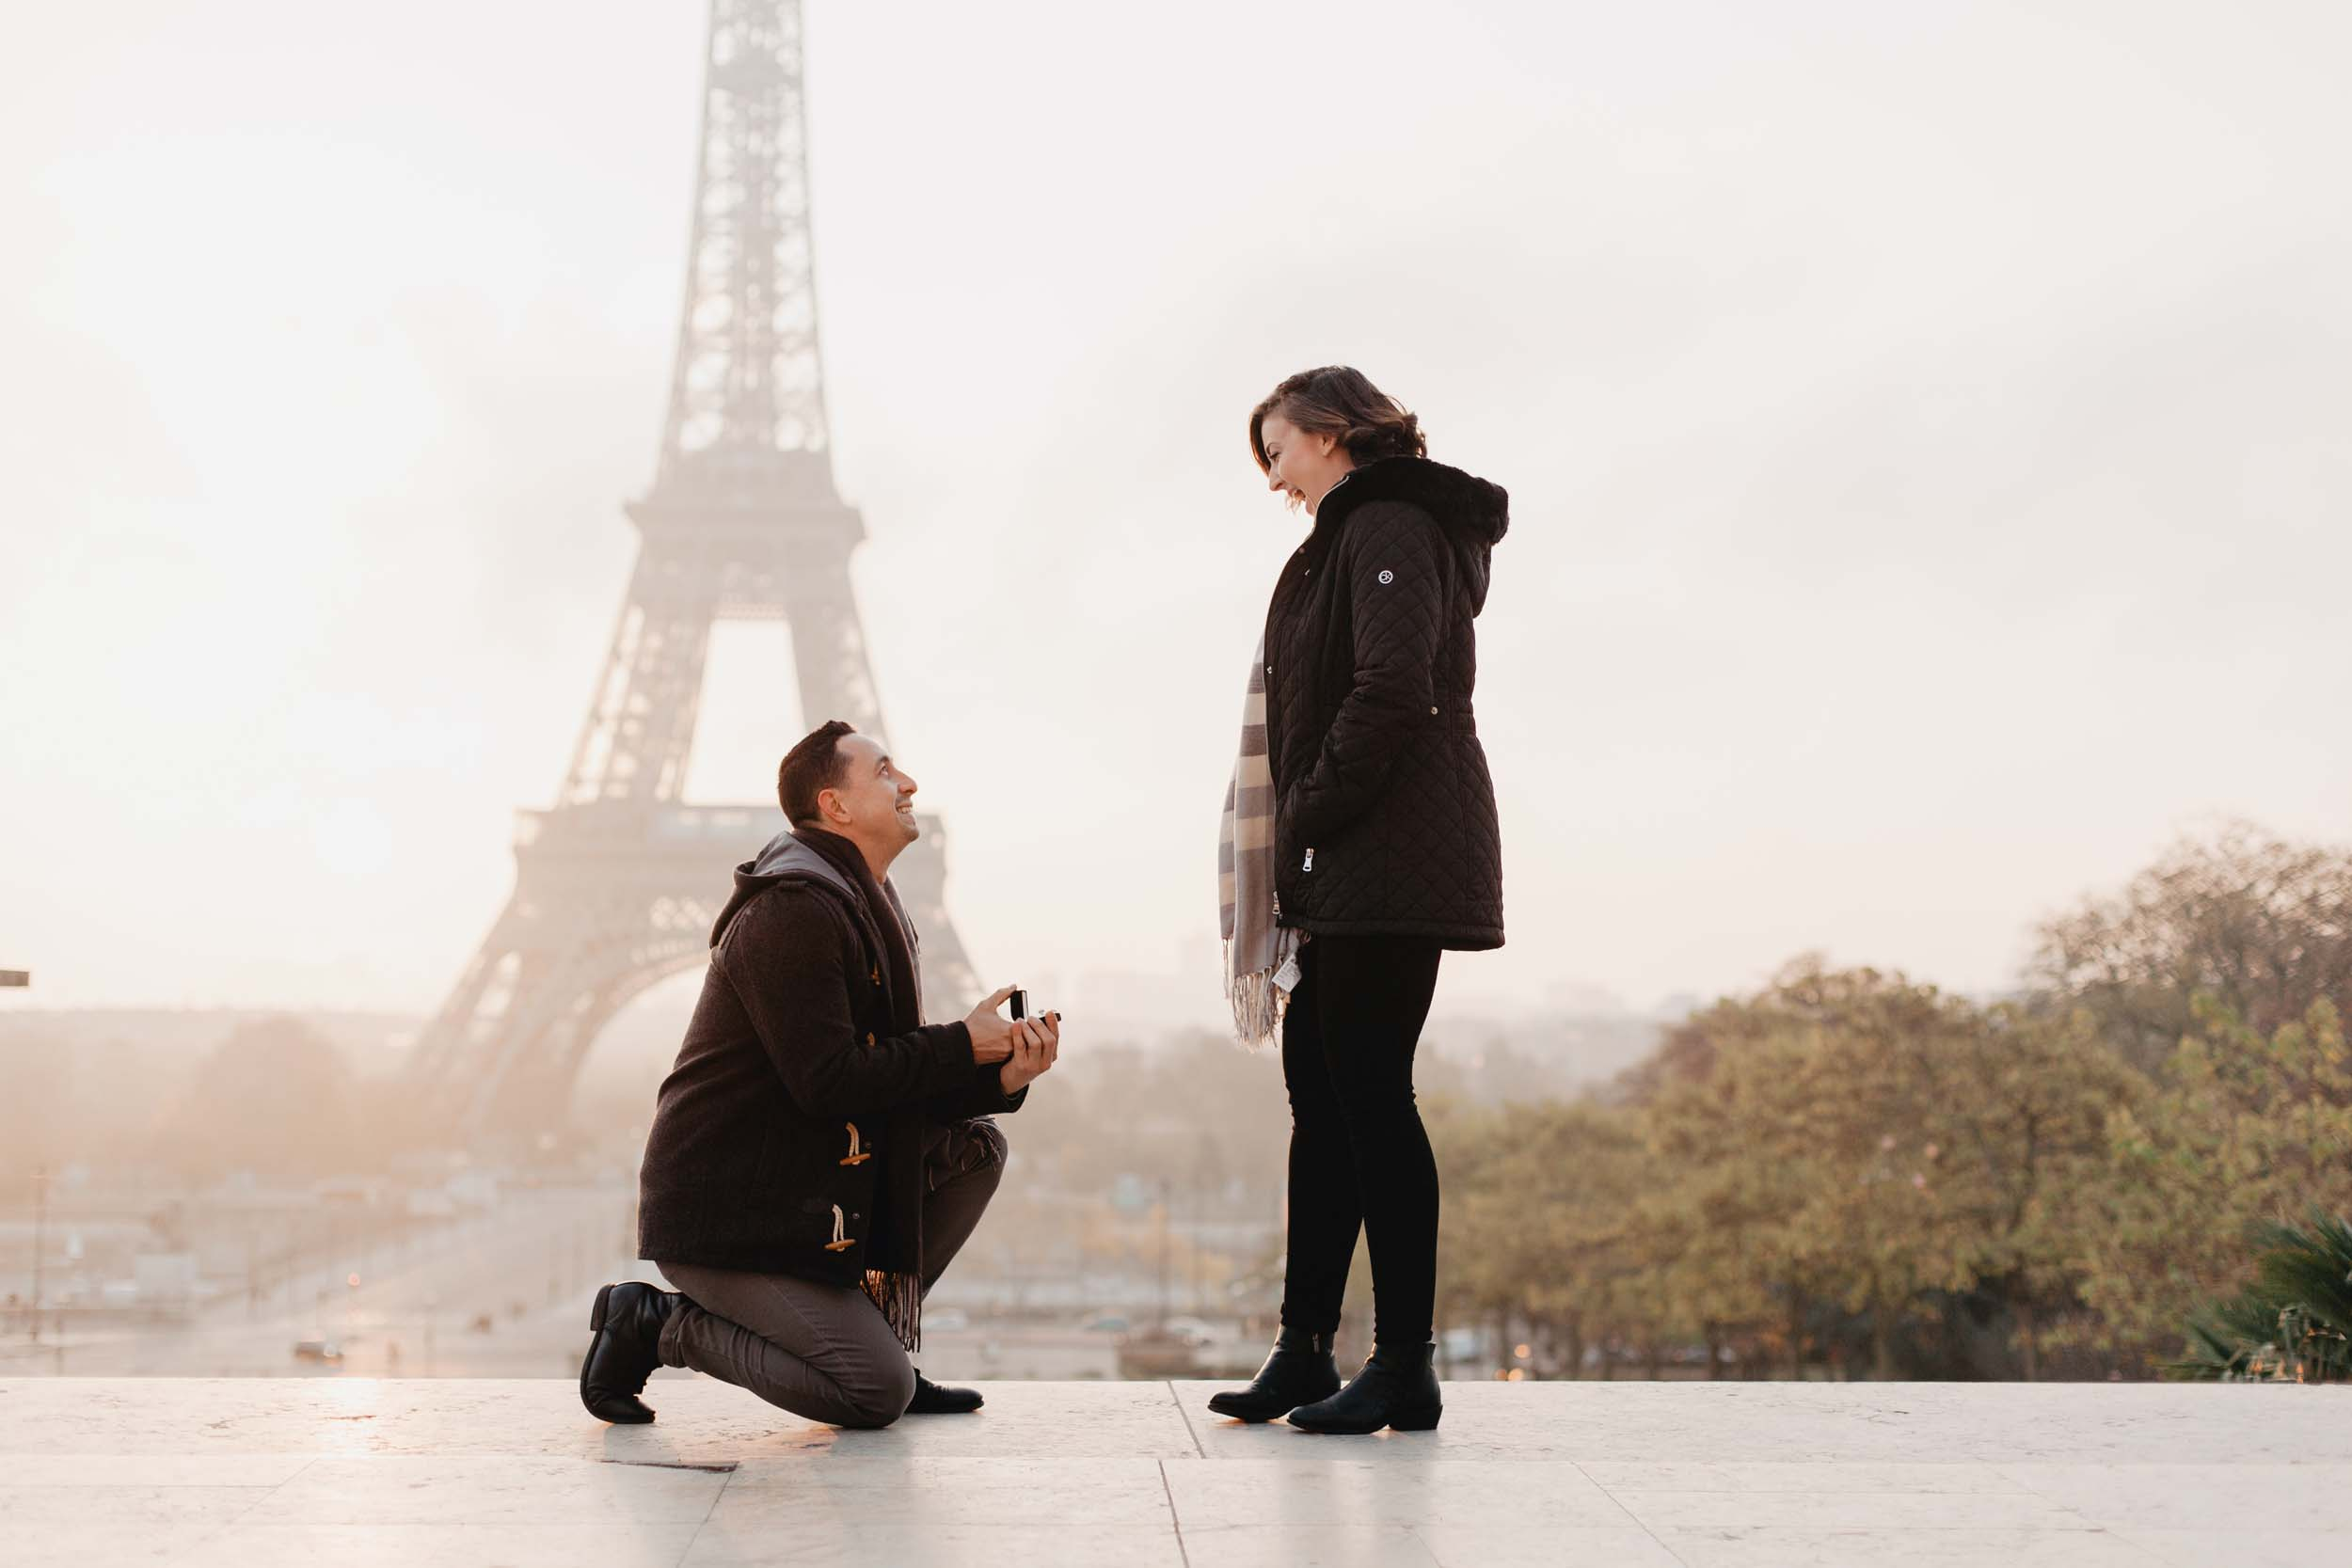 This Epic Paris Proposal Will Inspire You to Dream Big